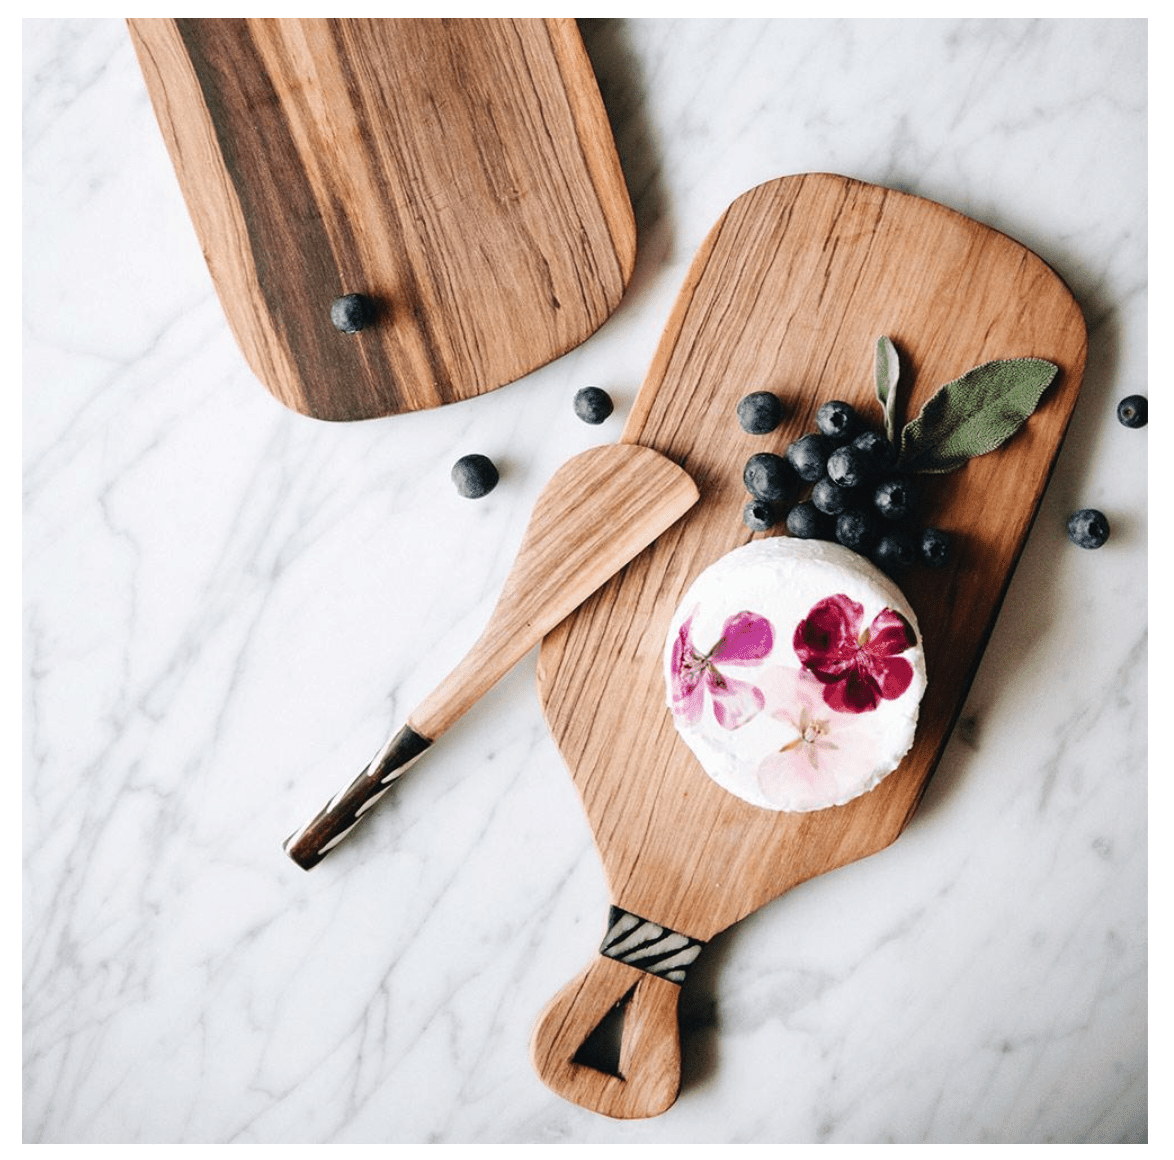 Cheese board plated with blueberries and rind of white cheese with floral imprint